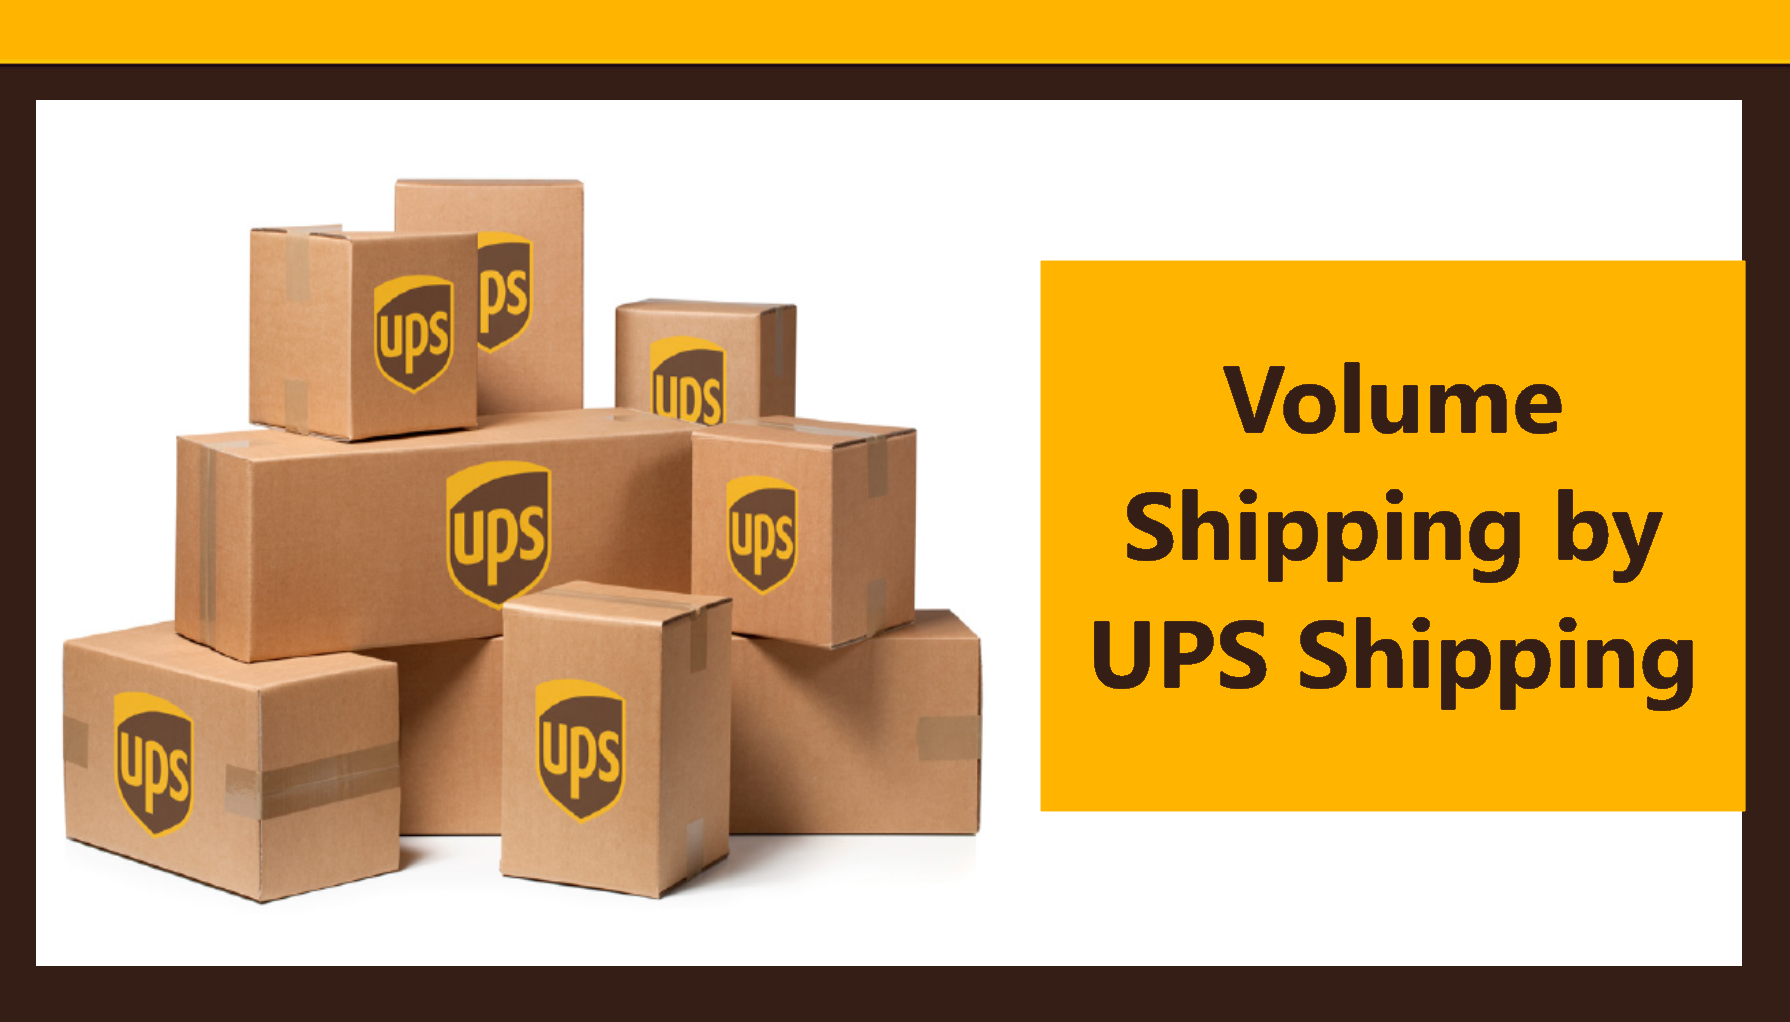 Volume Shipping by UPS Shipping